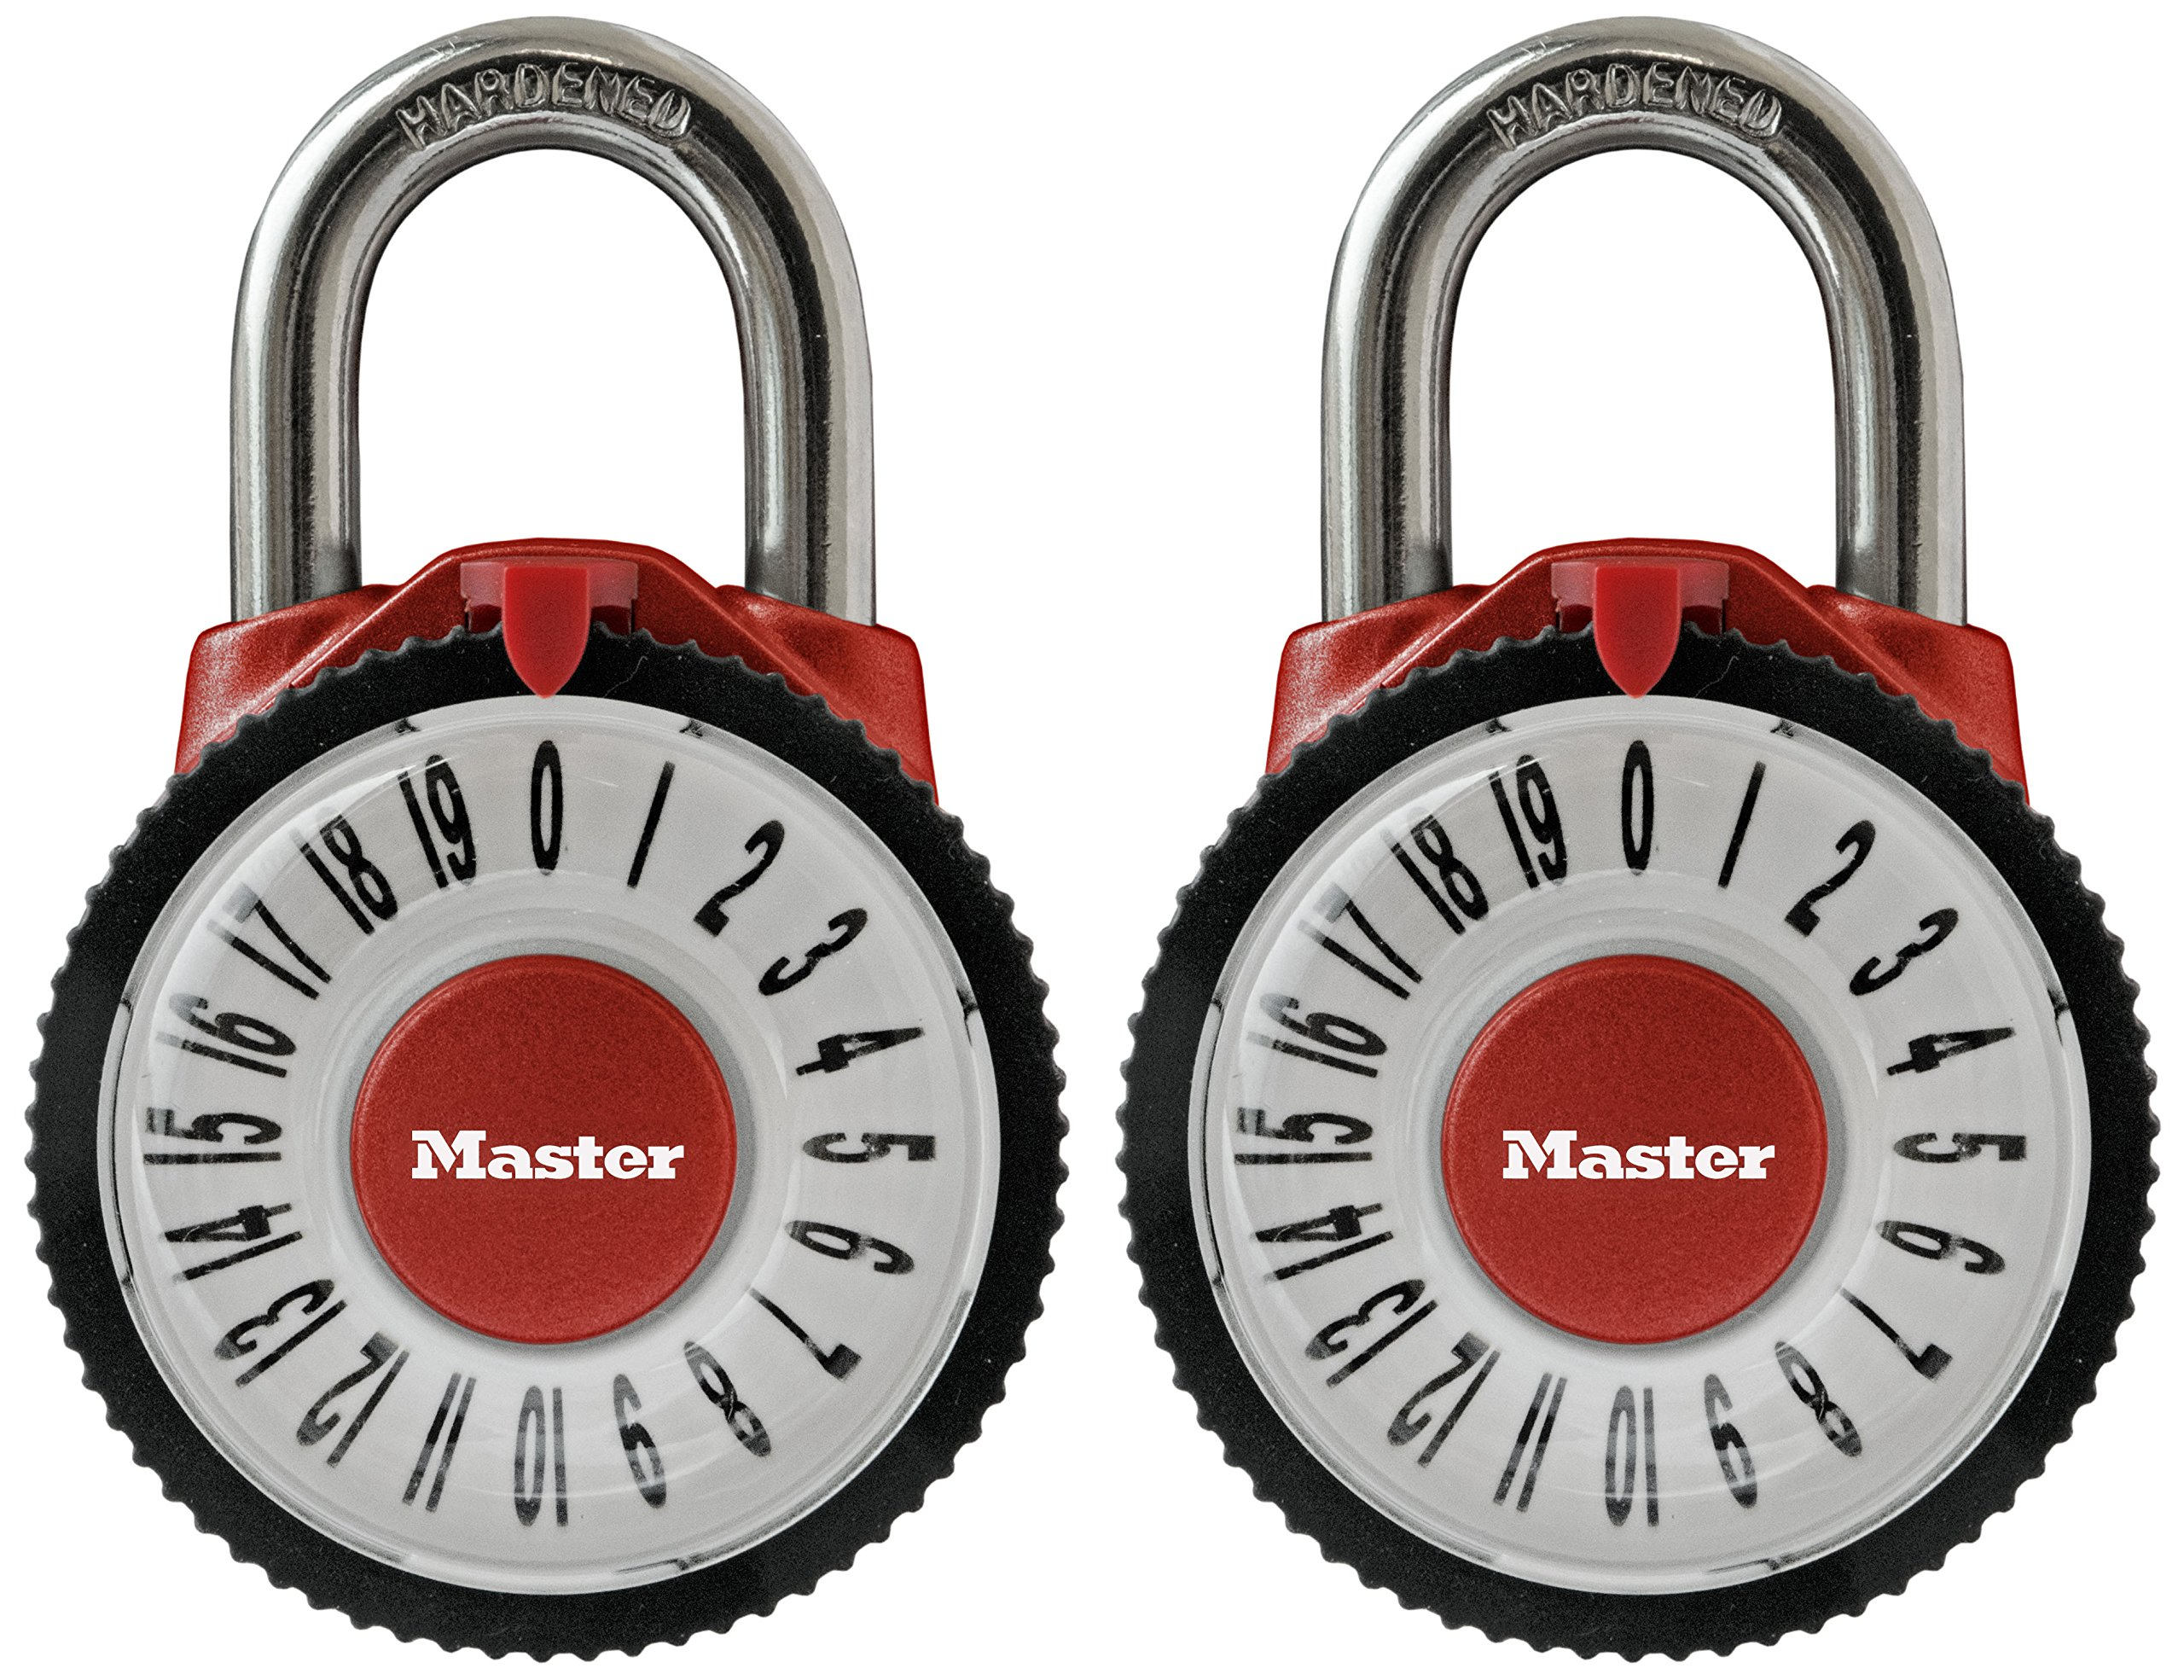 Master Lock Padlock, Standard Dial Combination Lock with Magnification Lens, 2-1/8 in. Wide, Assorted Colors, 1588T (Pack of 2-Combination Alike) by Master Lock (Image #1)